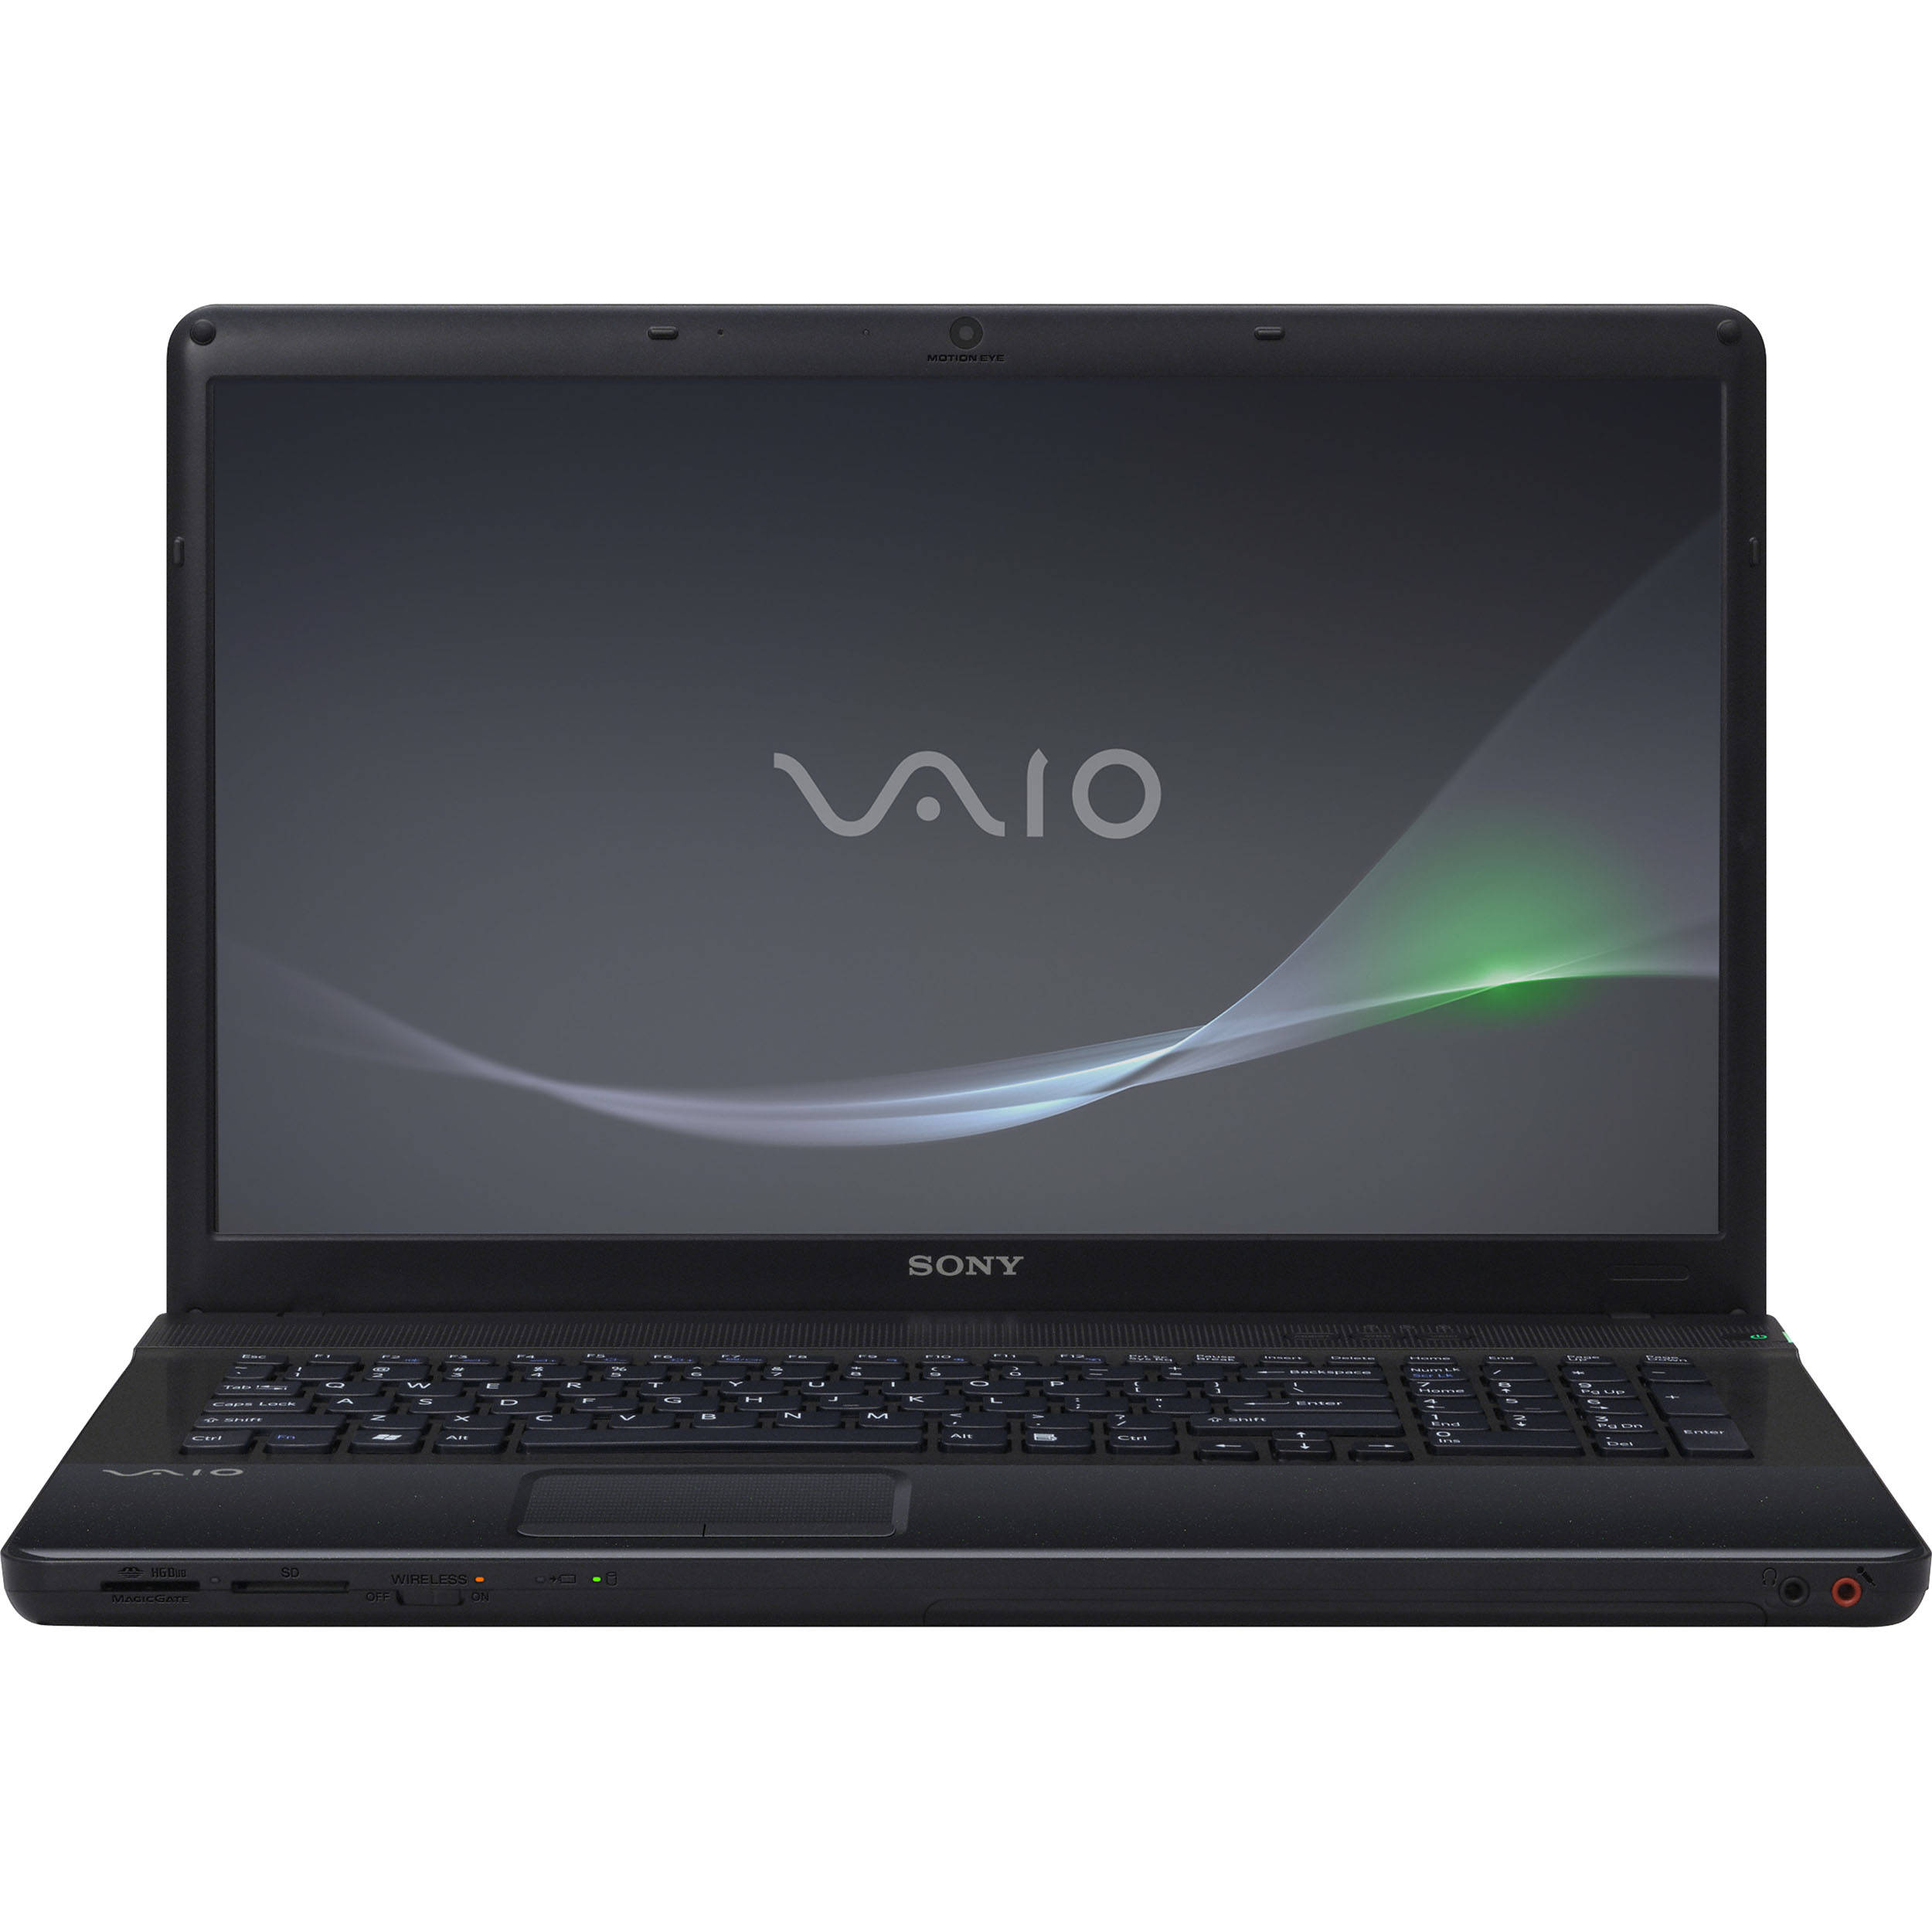 Sony Vaio VPCEC25FX TouchPad Settings Drivers for Windows 7